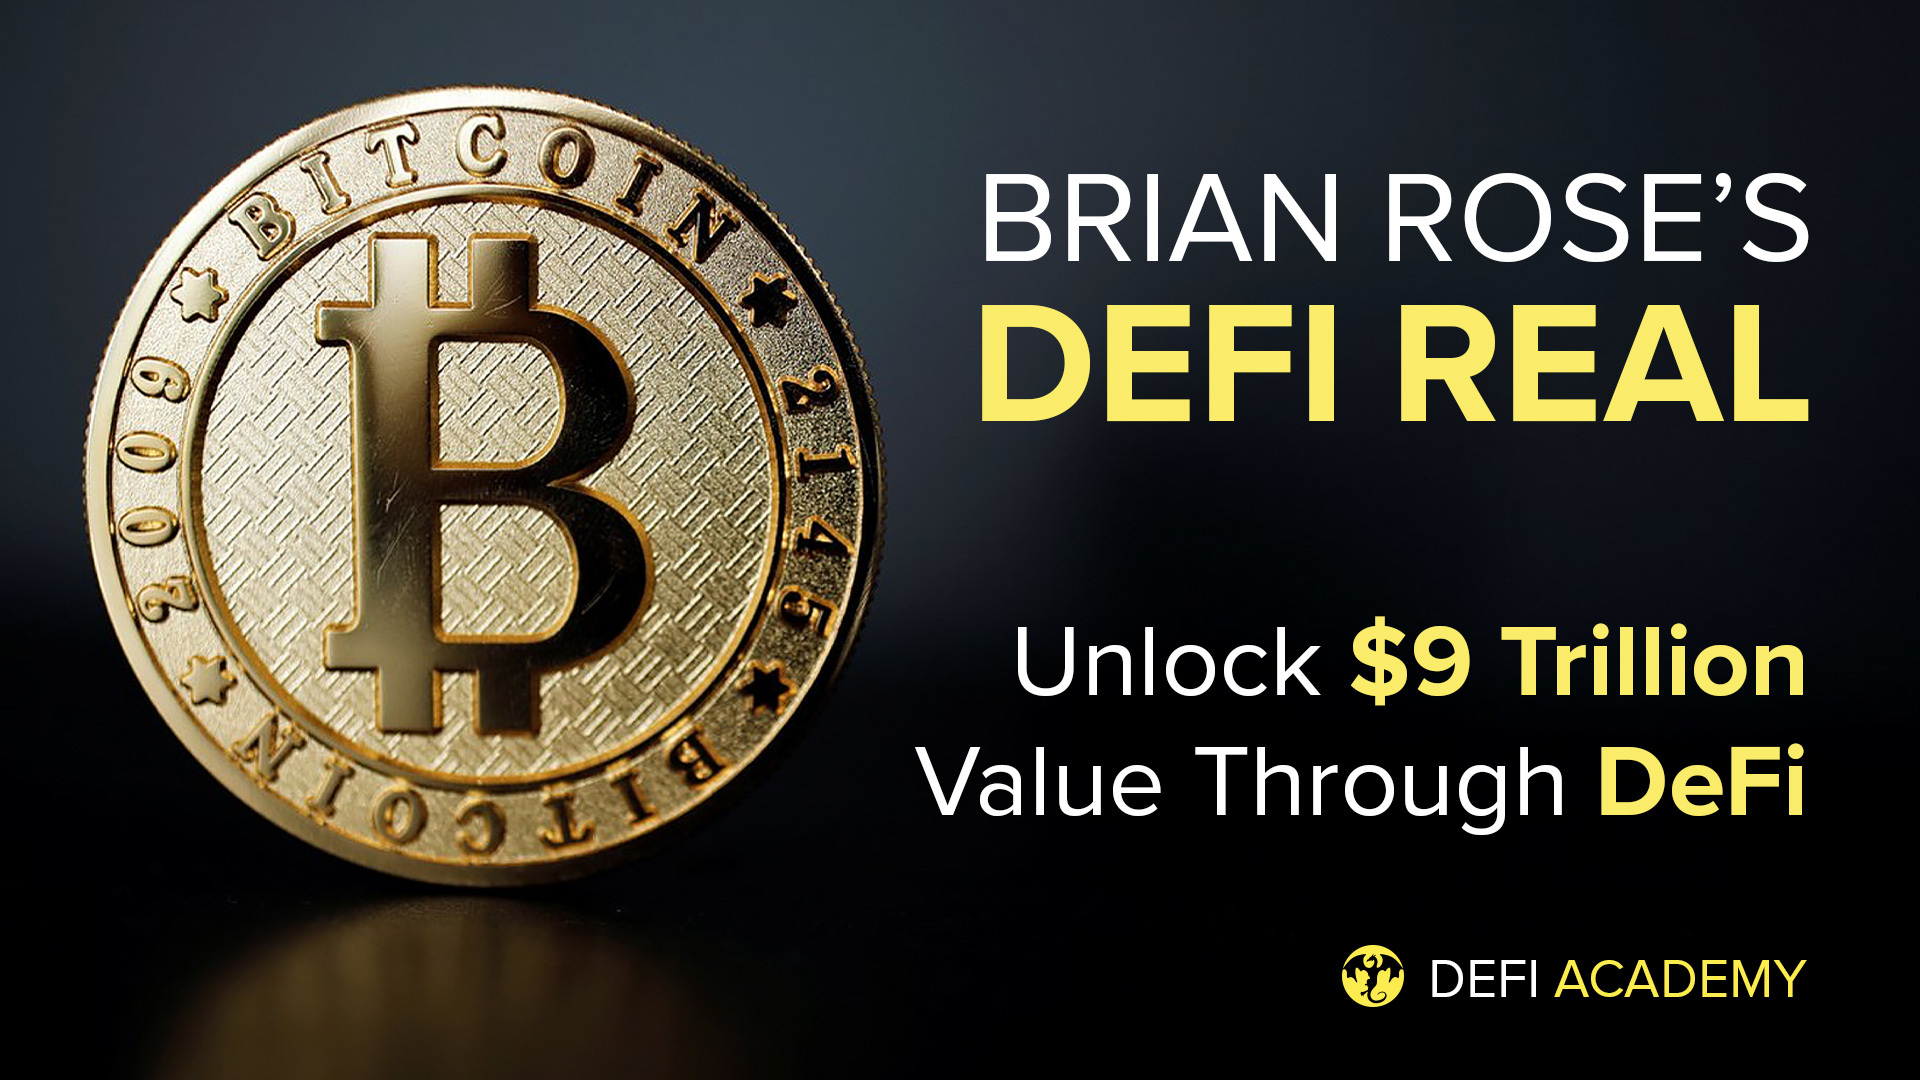 DeFi Real with Brian Rose